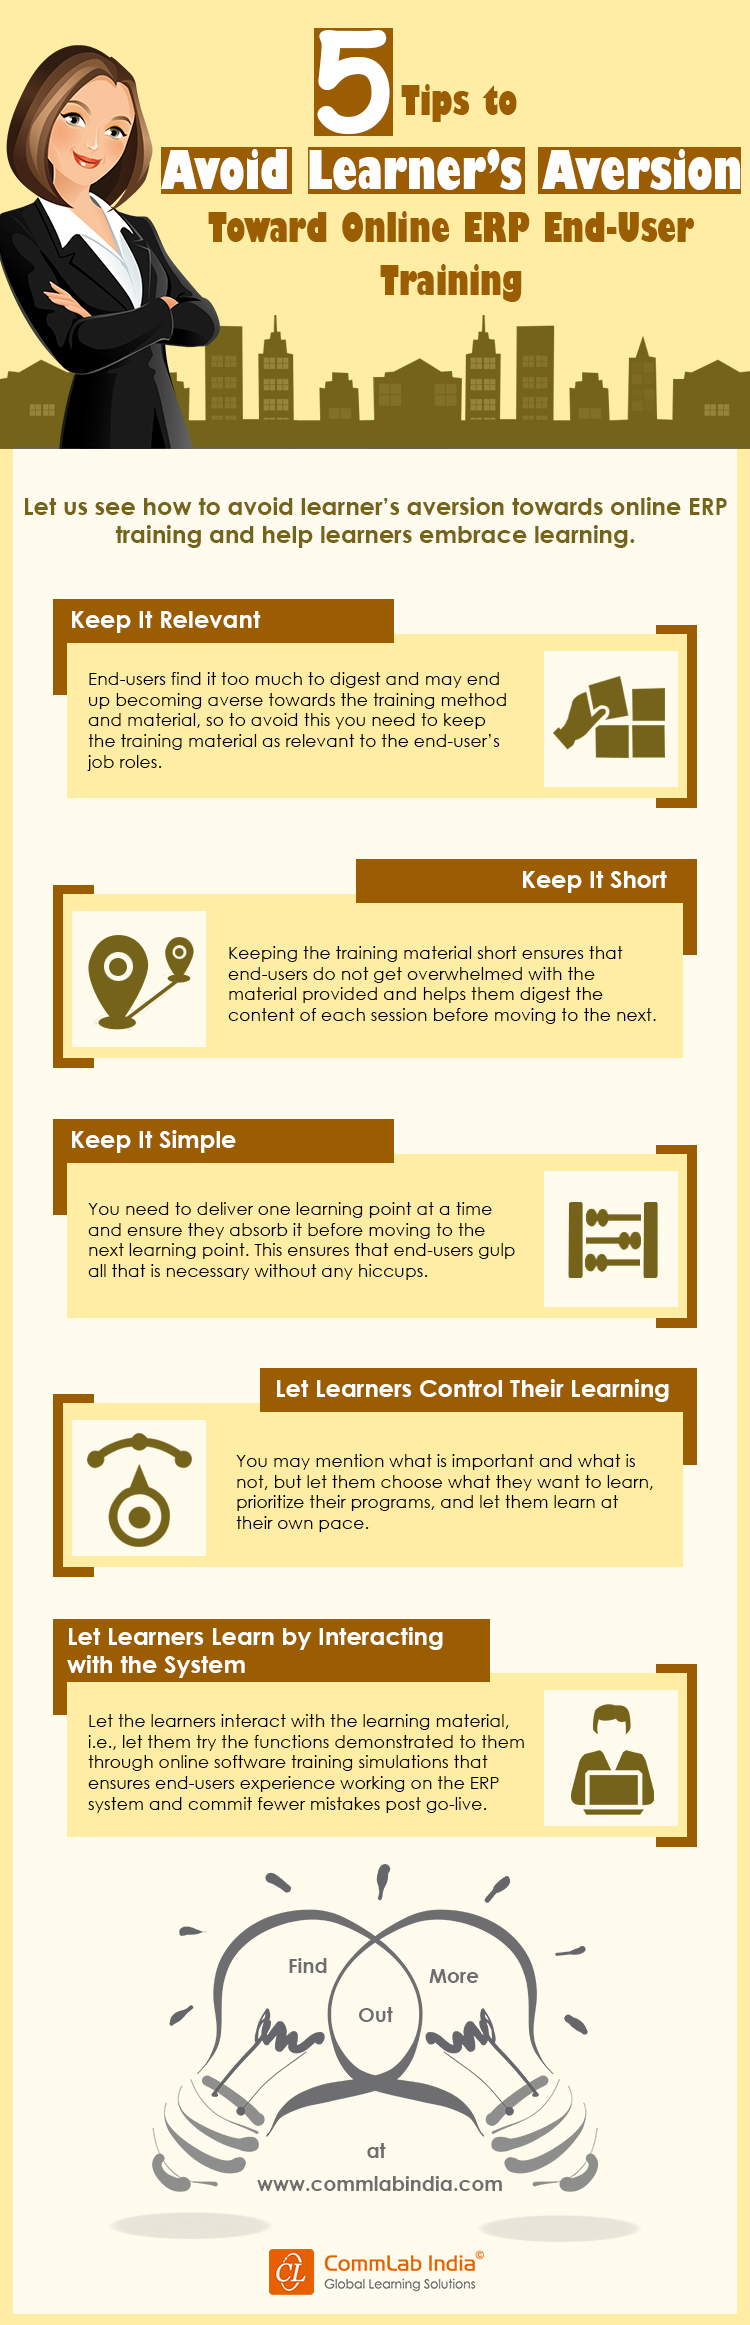 5 Tips to Avoid ERP End-user Training Learner Aversion [Infographic]